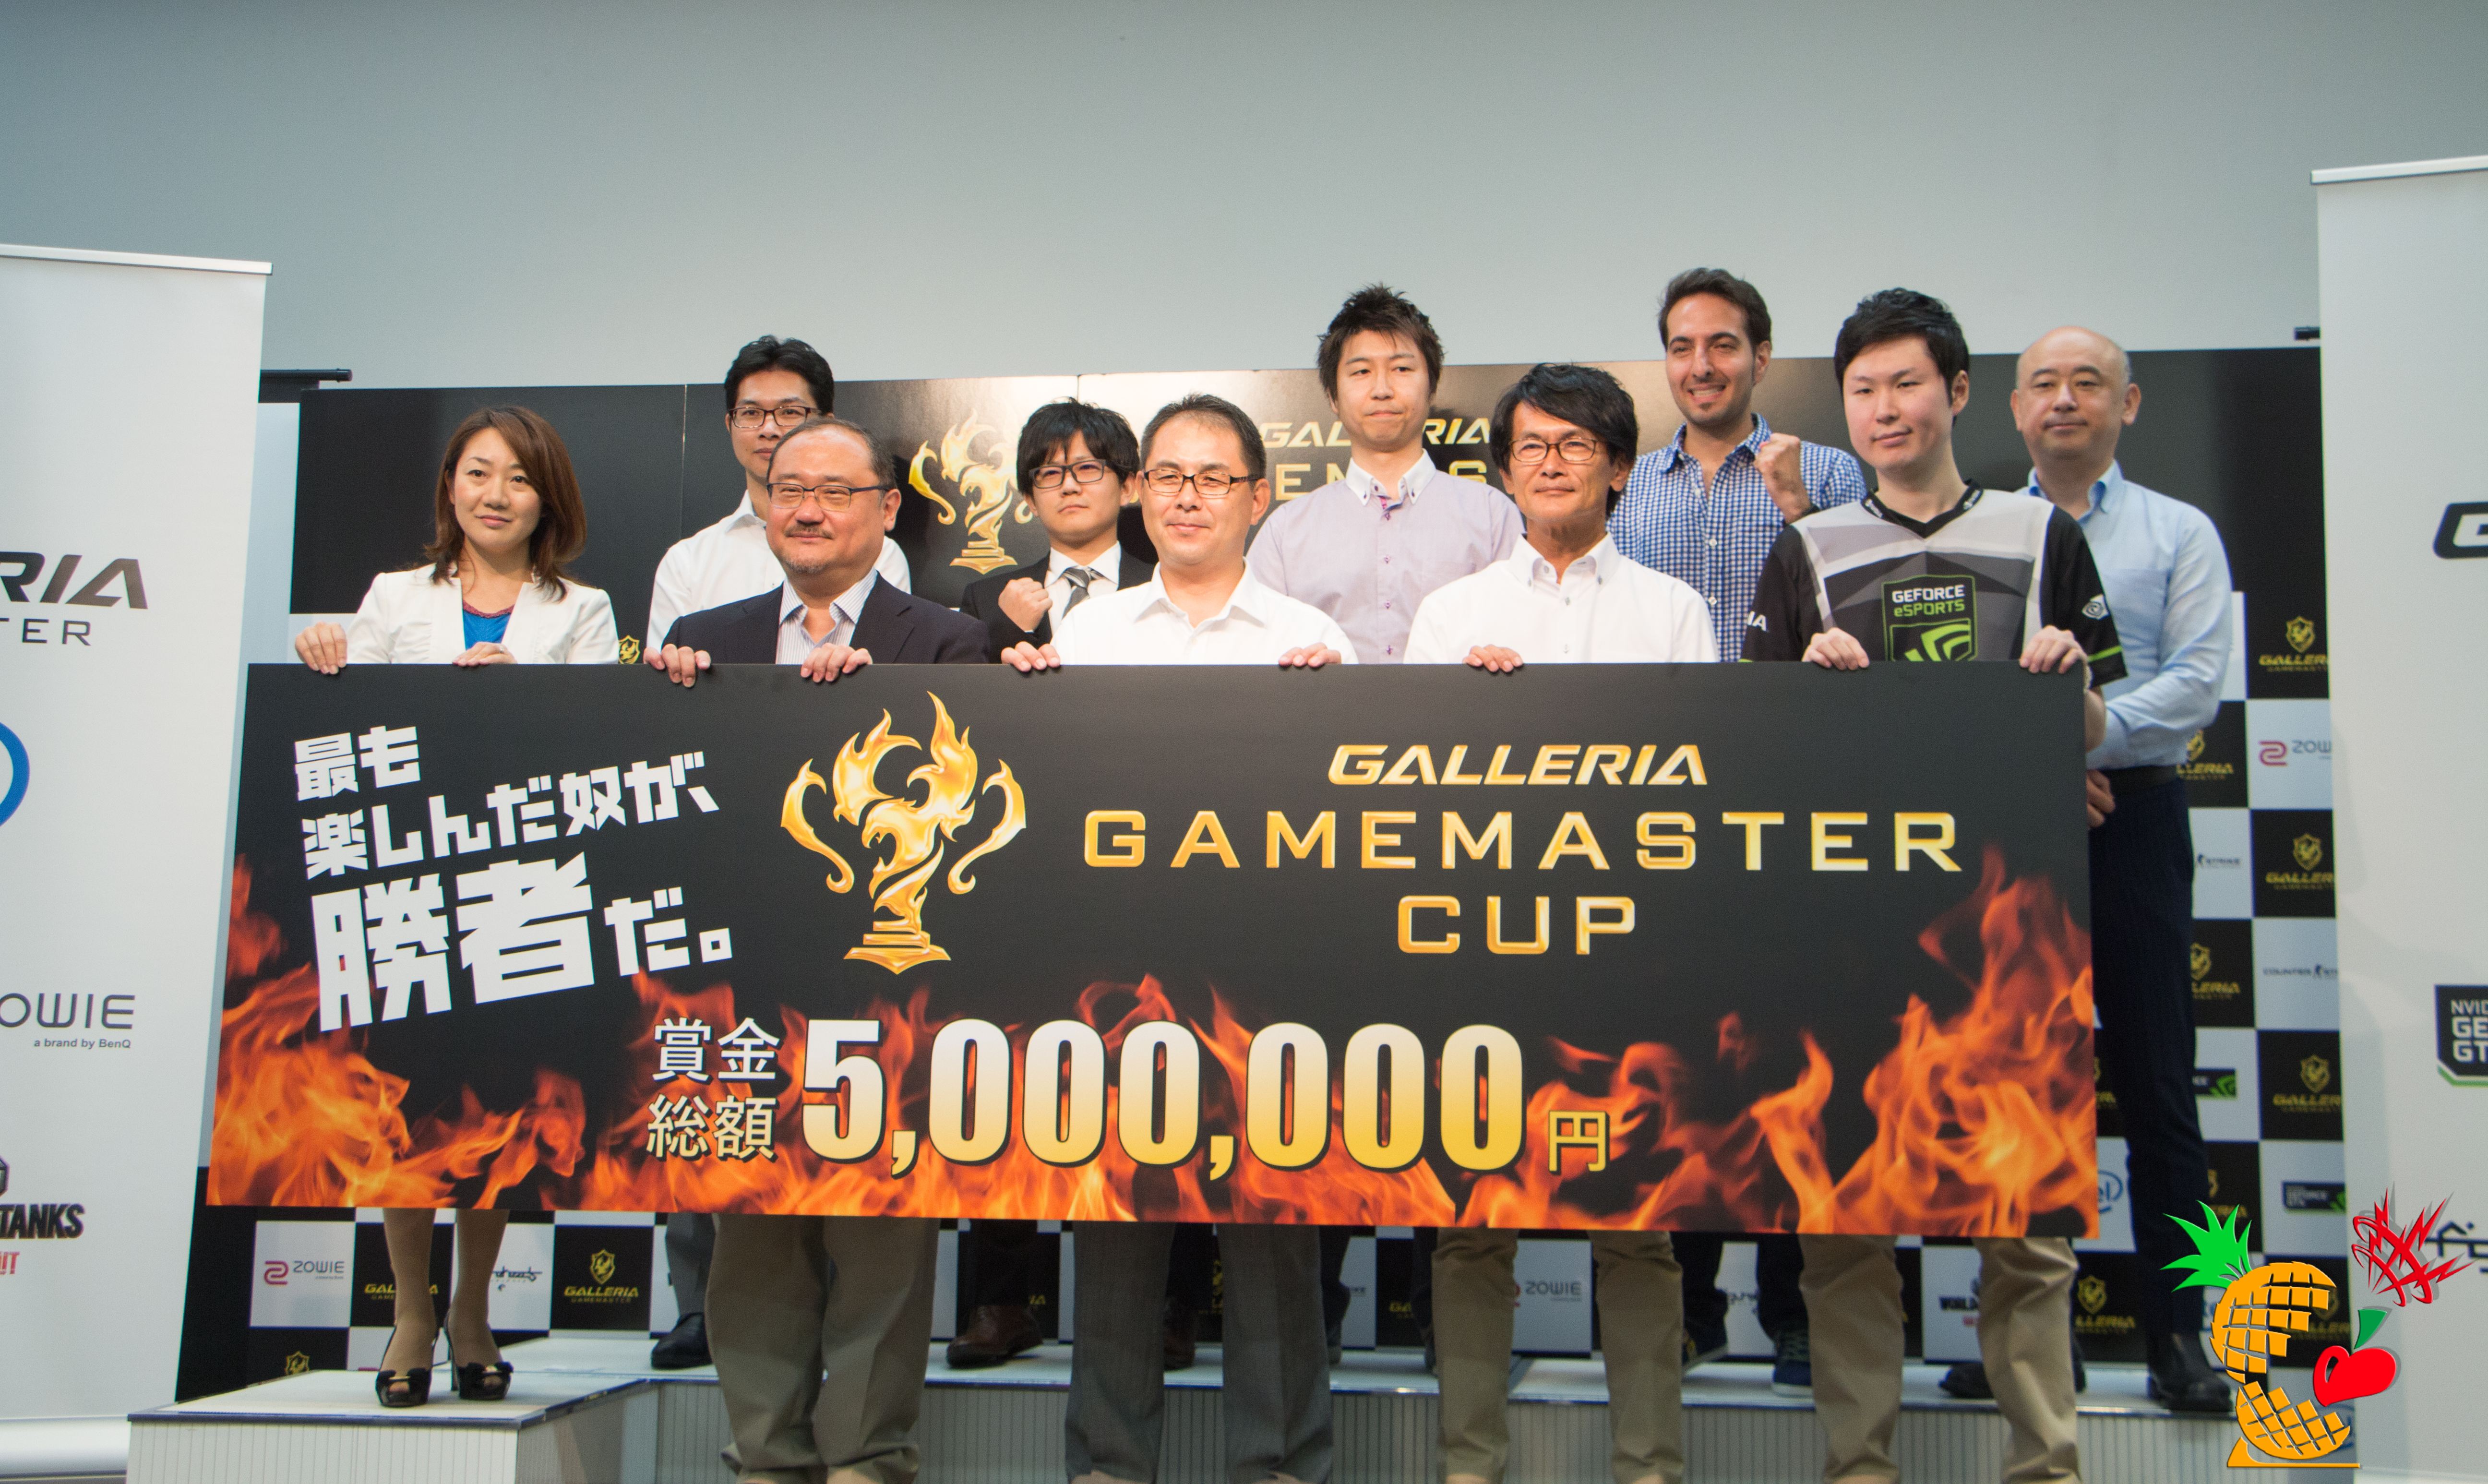 GALLERIA GAMESTER CUP:プレス発表会